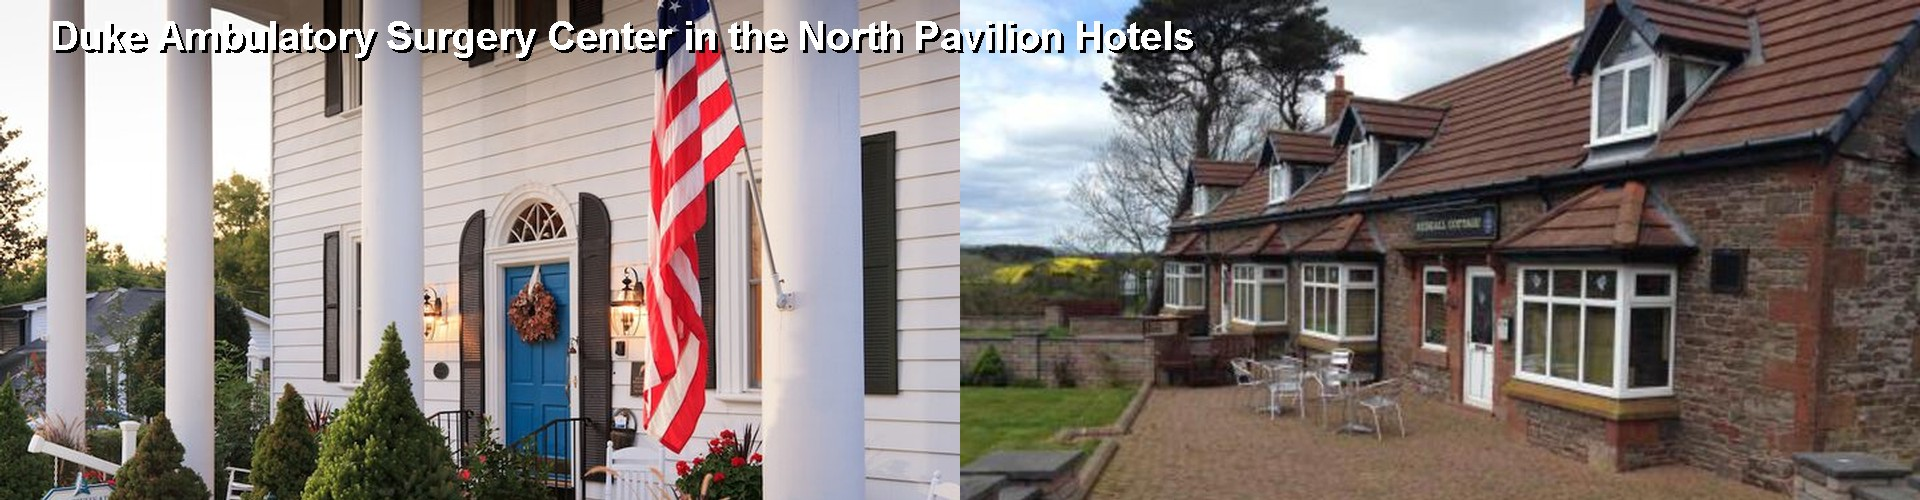 5 Best Hotels near Duke Ambulatory Surgery Center in the North Pavilion